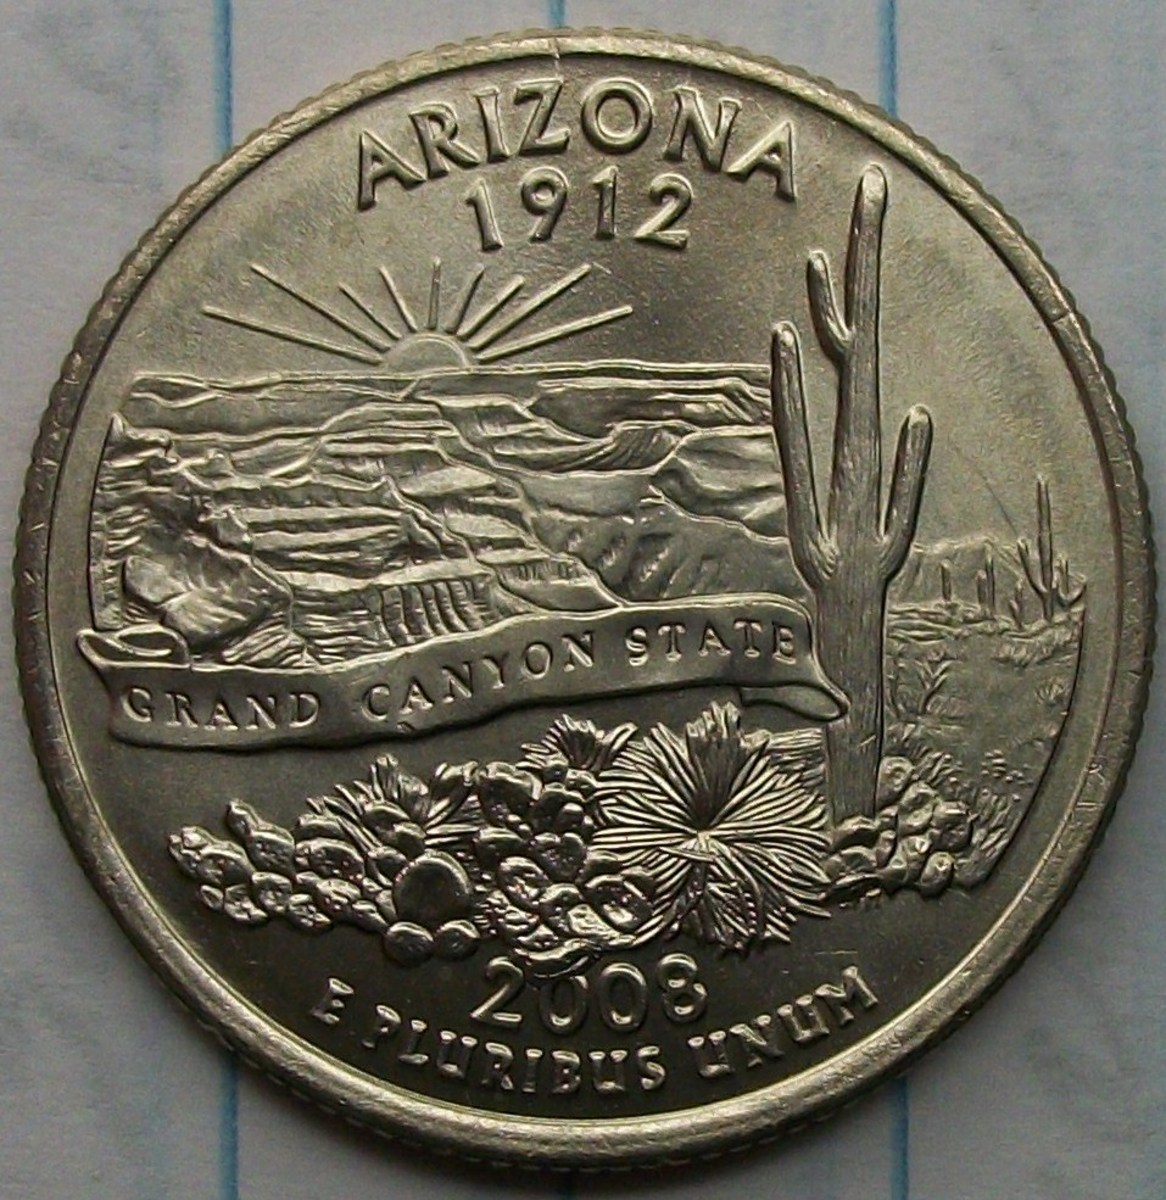 2008P Arizona 2 Leaf Error 1st leaf covering part of date. 2nd leaf covering part of the designer initials. There is a 2nd variety that only covers part of the designers initials.